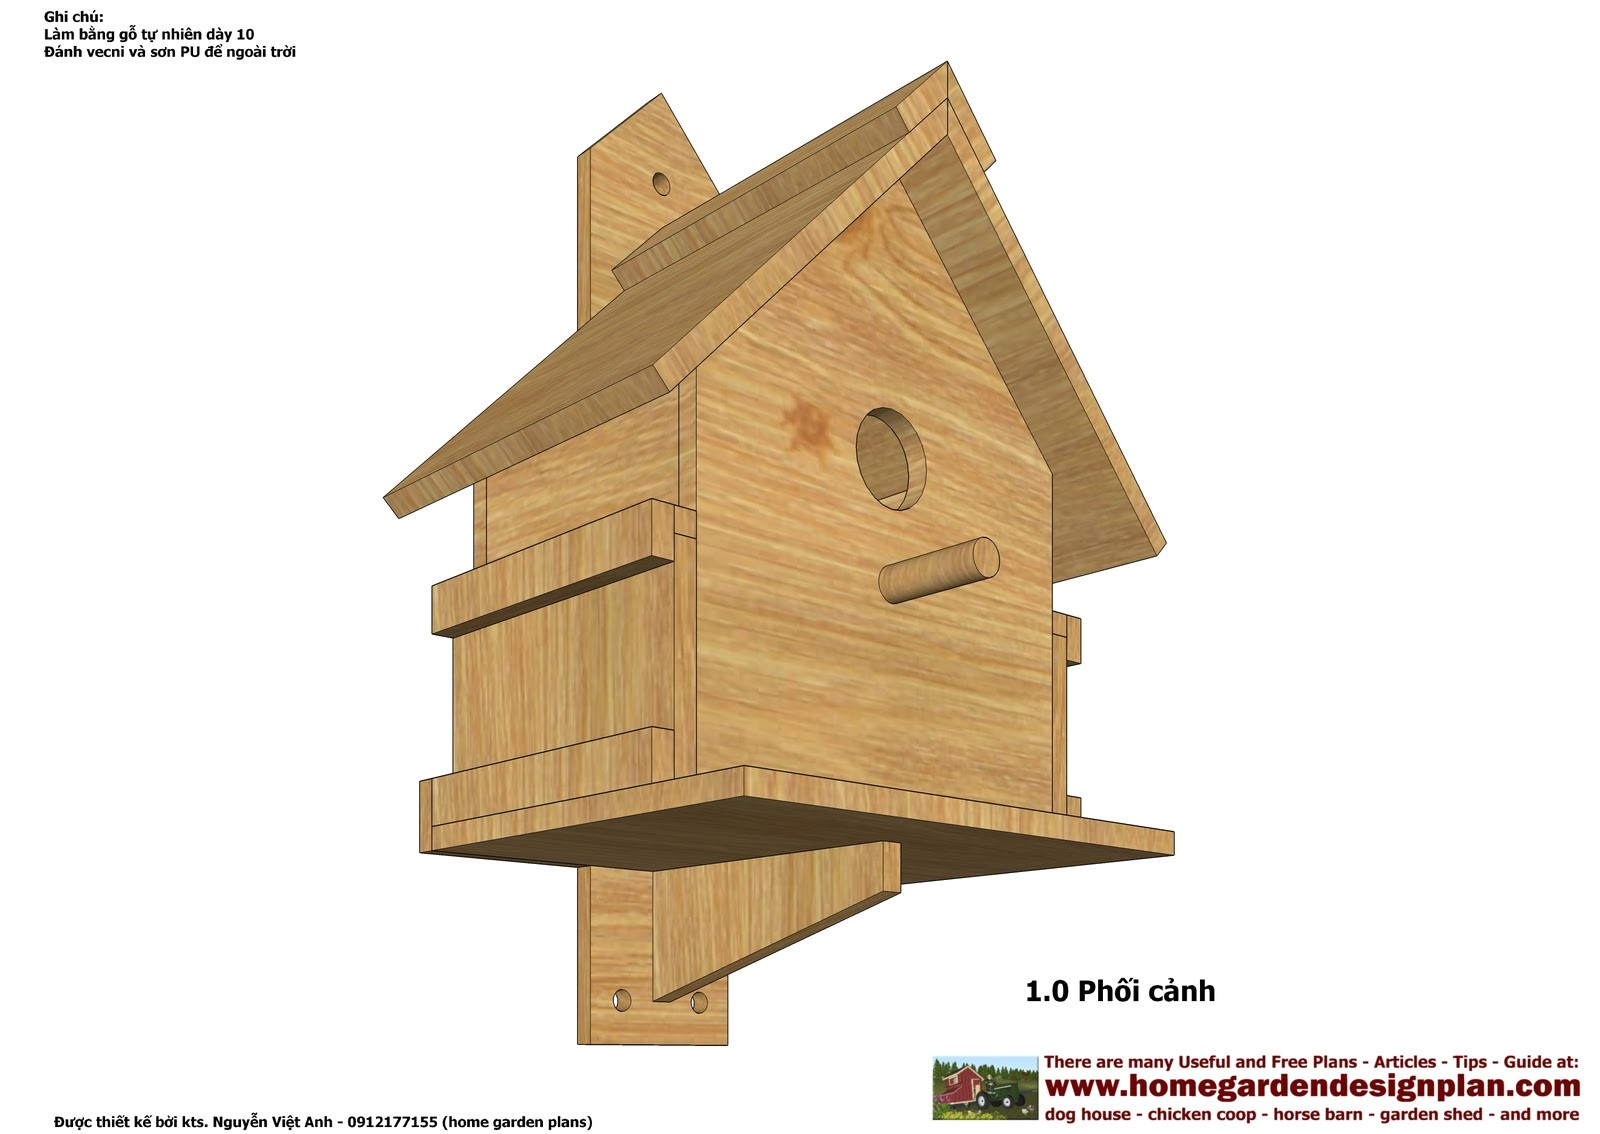 know more tall birdhouse plans